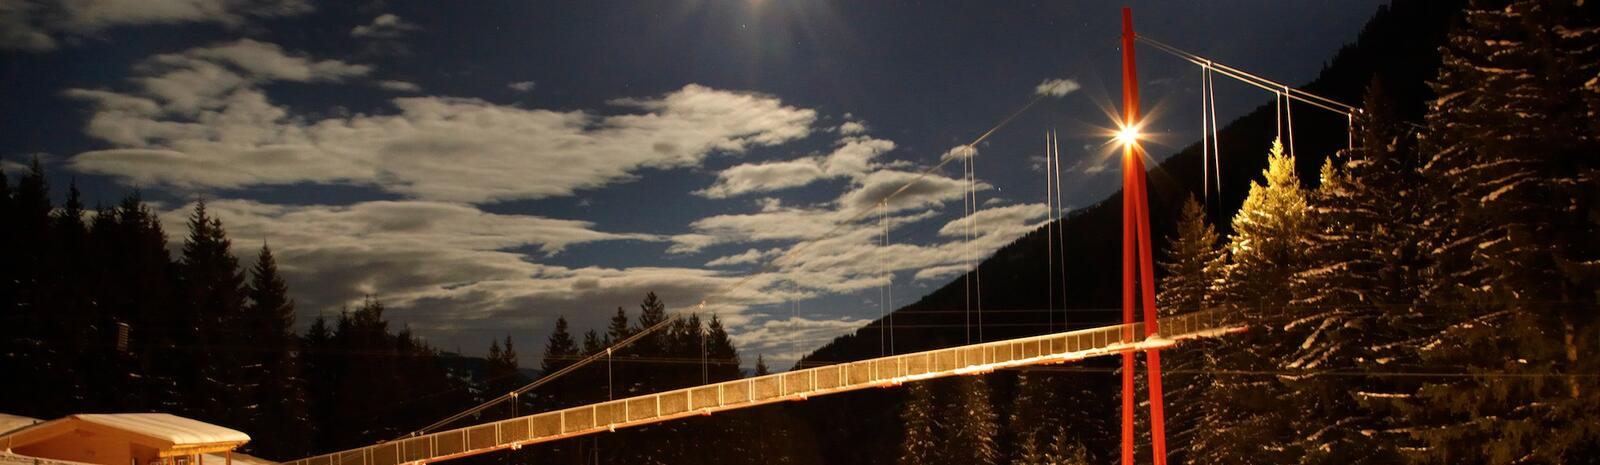 Golden Gate Bridge of the alps at night | © gesamt.at